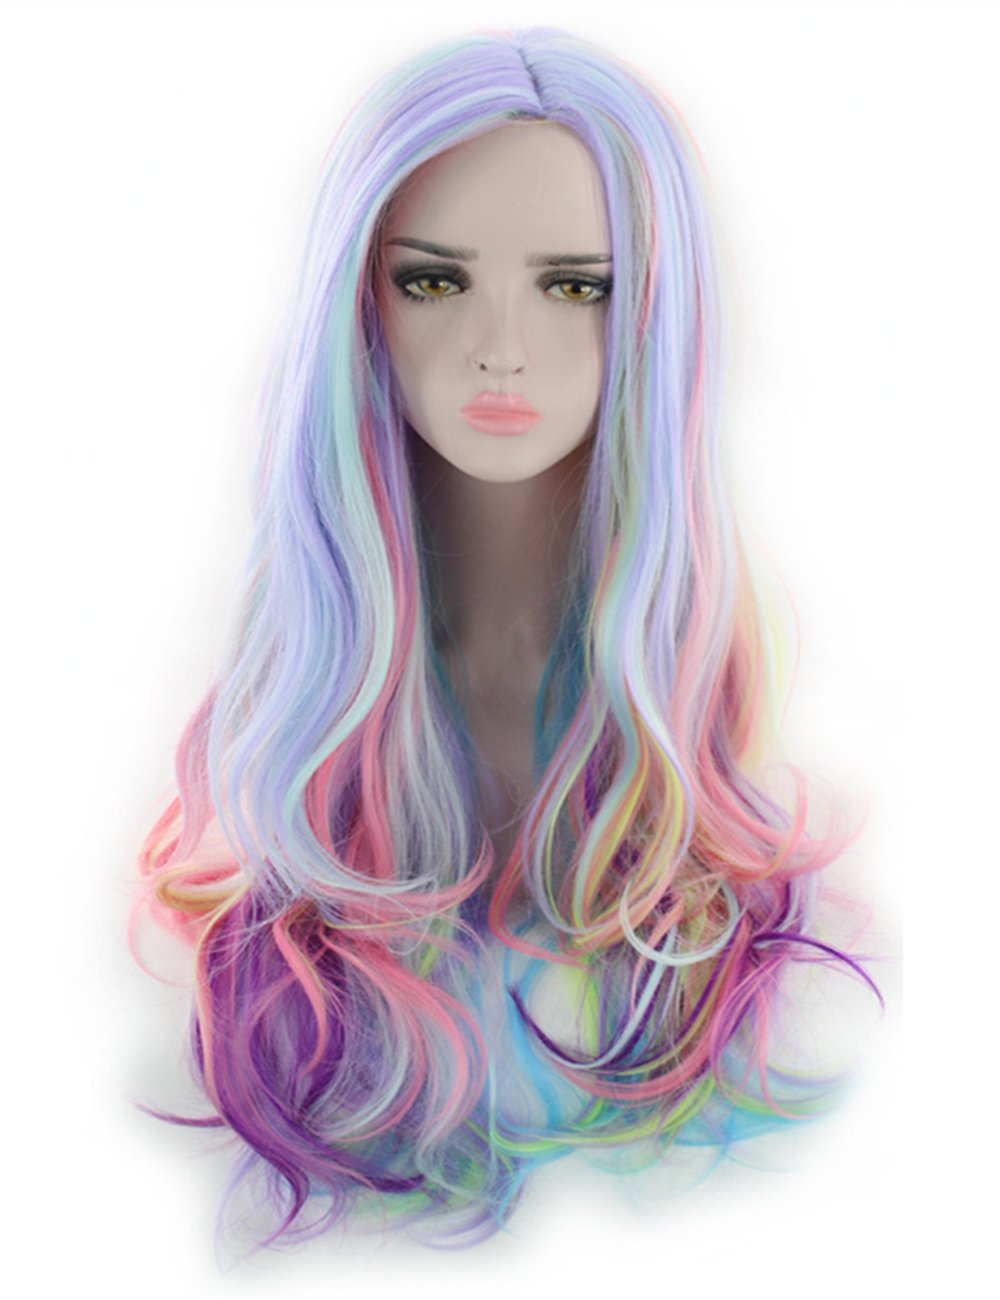 aec7f9eb4a32 Amazon.com  TopWigy Curly Cosplay Wigs Heat Resistant Long Colored Costume  Wigs Anime Party Multi Color Wigs (Multi Color 28